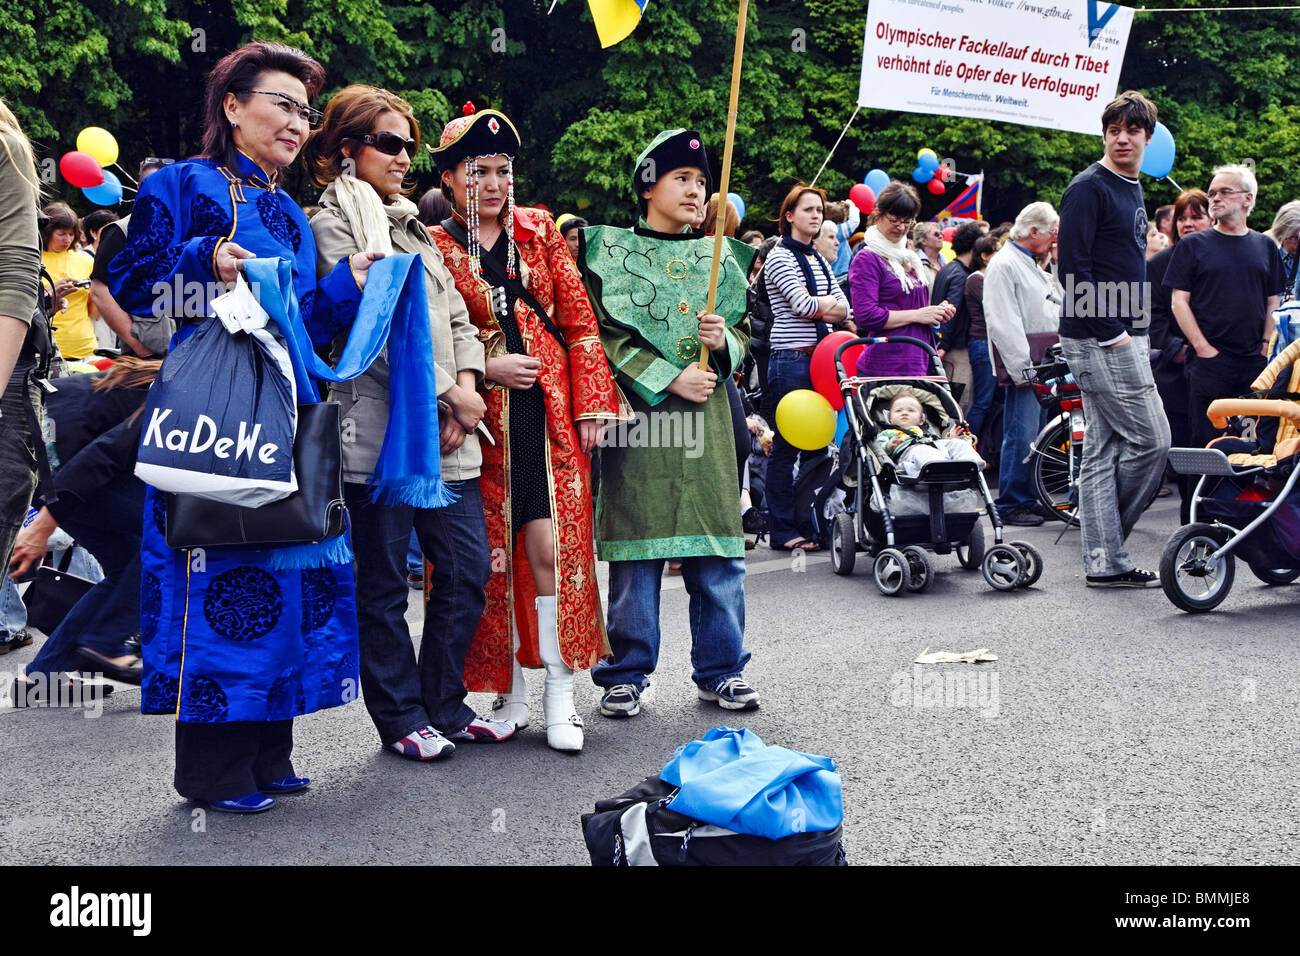 Tibetans during the visit of the Dalai Lhama, Berlin, Germany - Stock Image